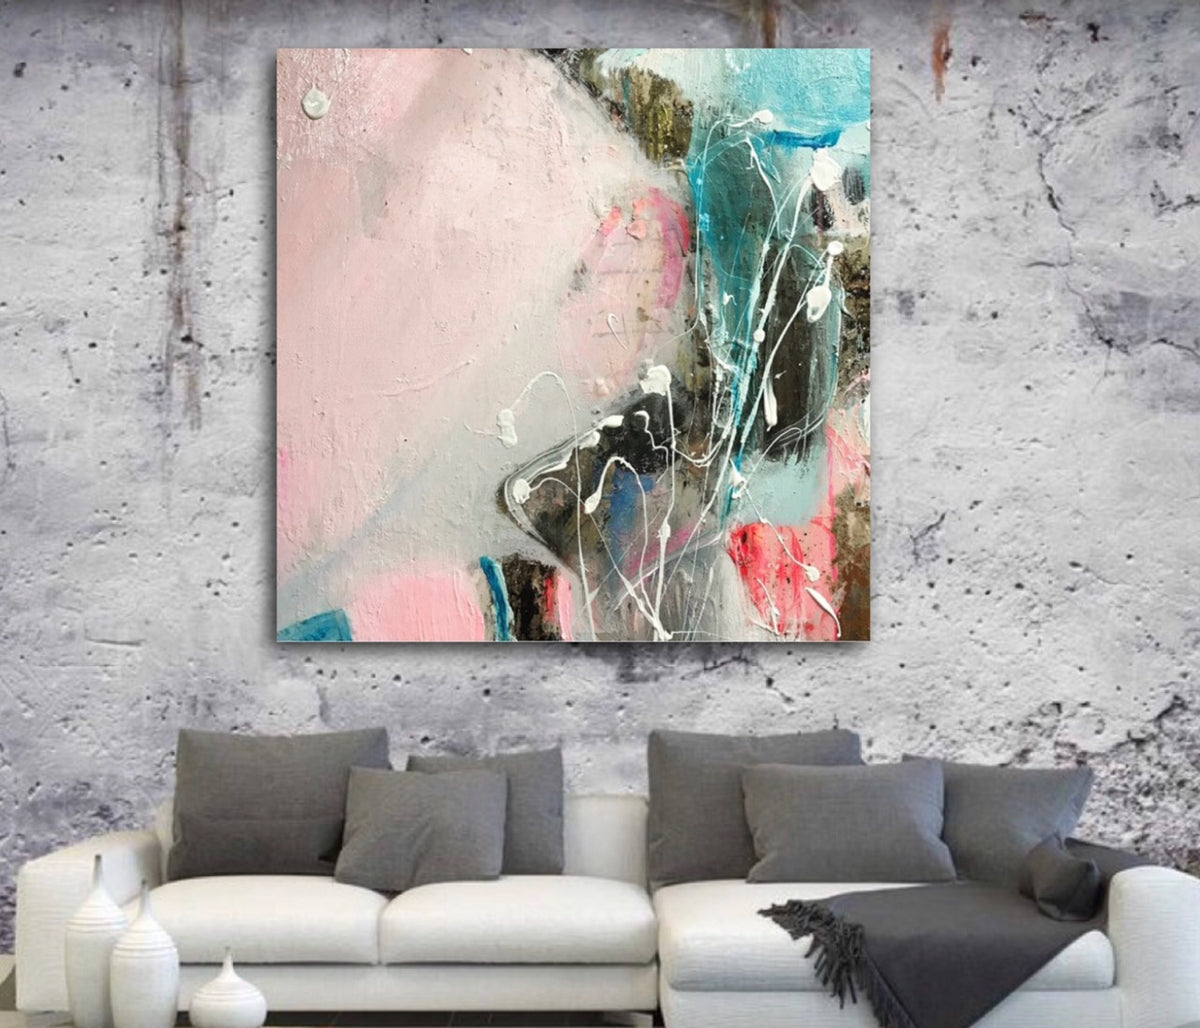 Off The Coast of Sicily | Original Artwork on Canvas